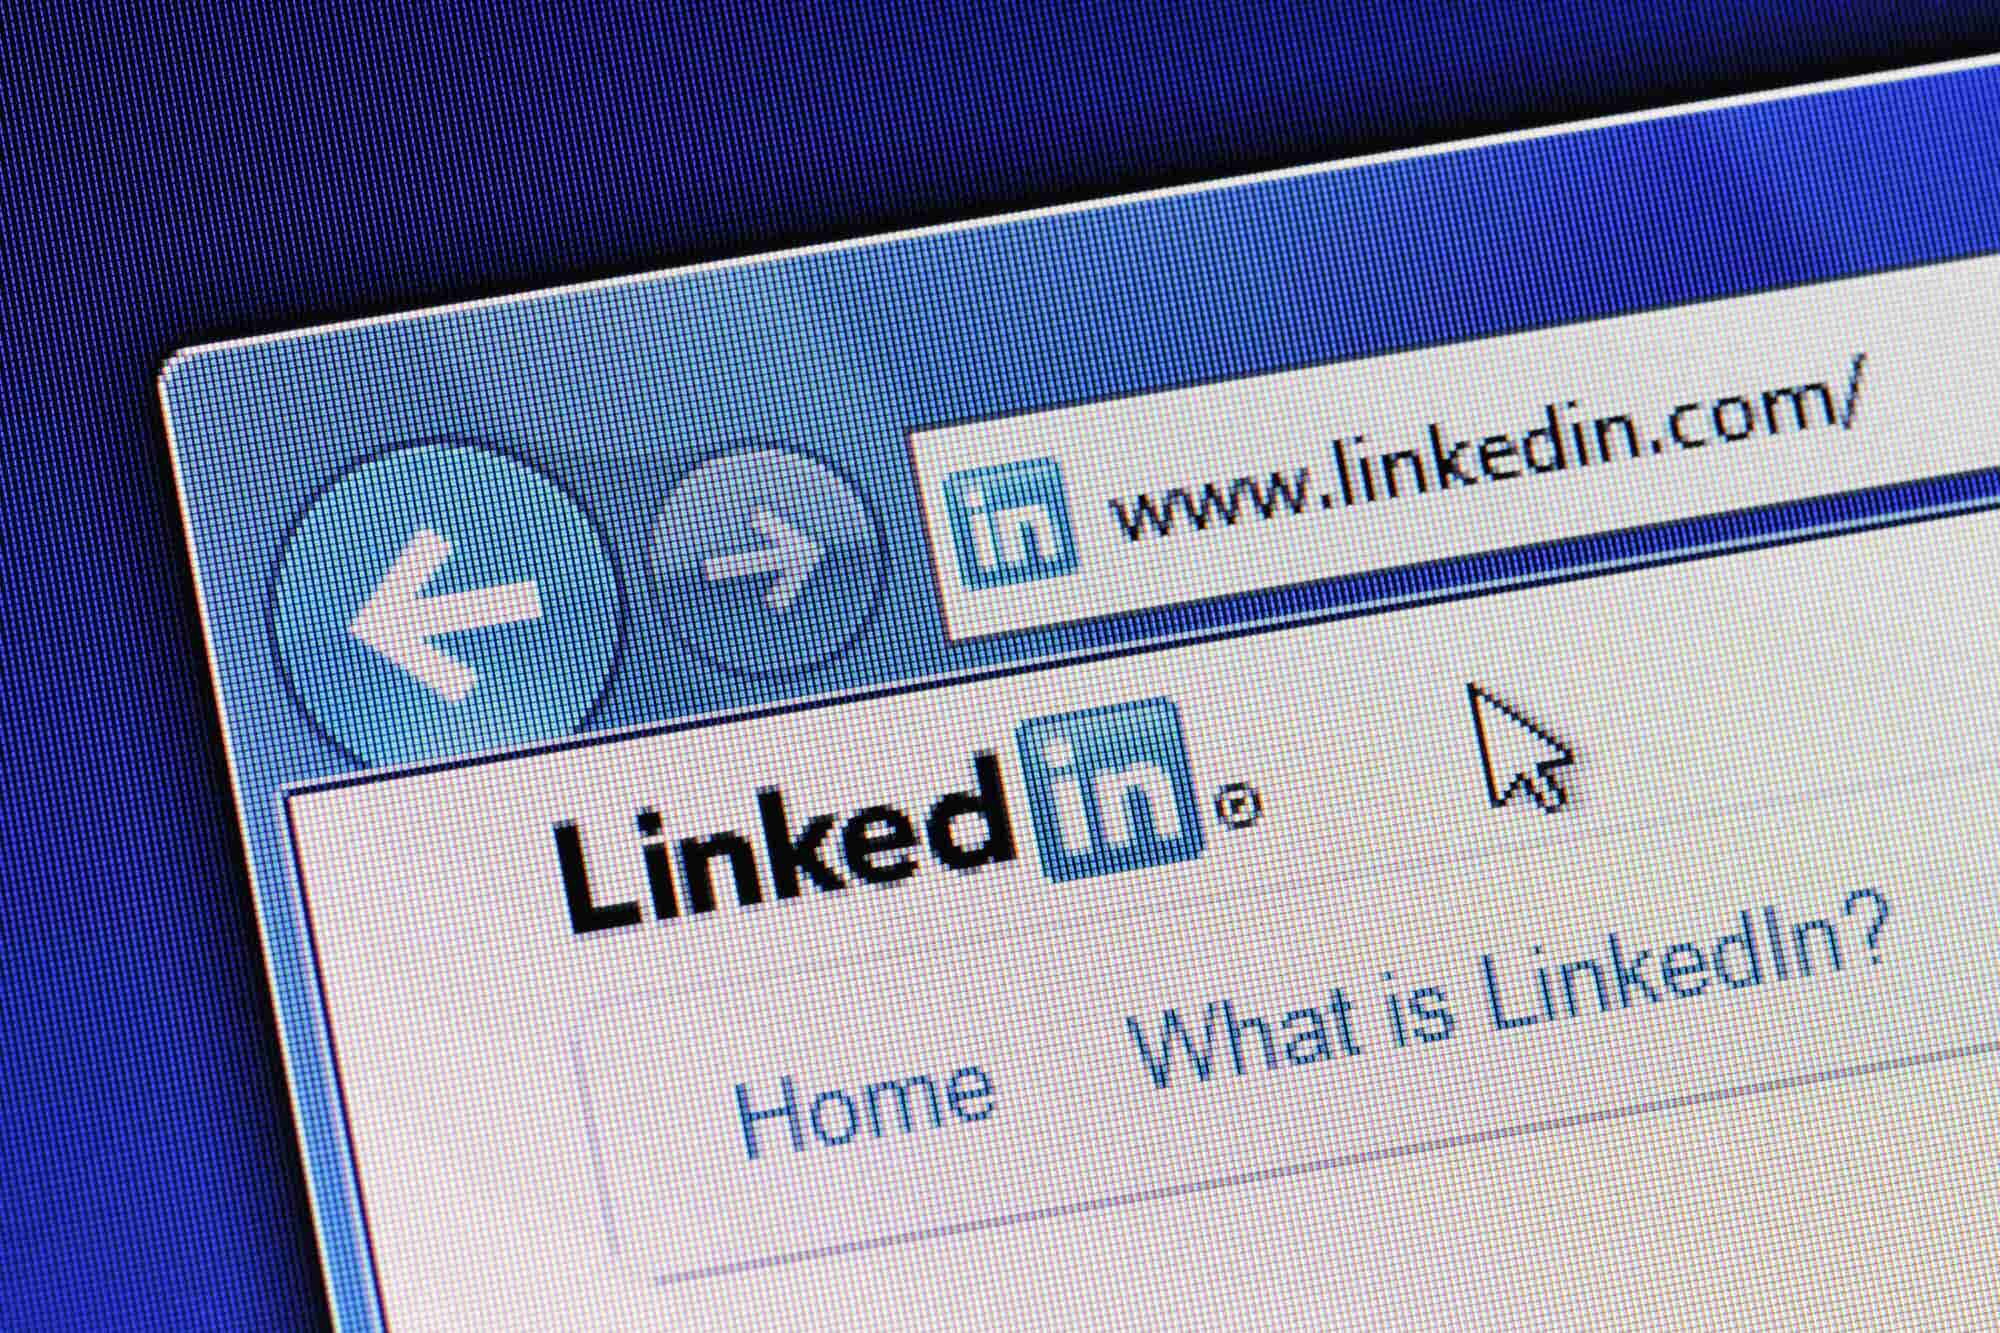 How to Get to the Top of LinkedIn's Search Results